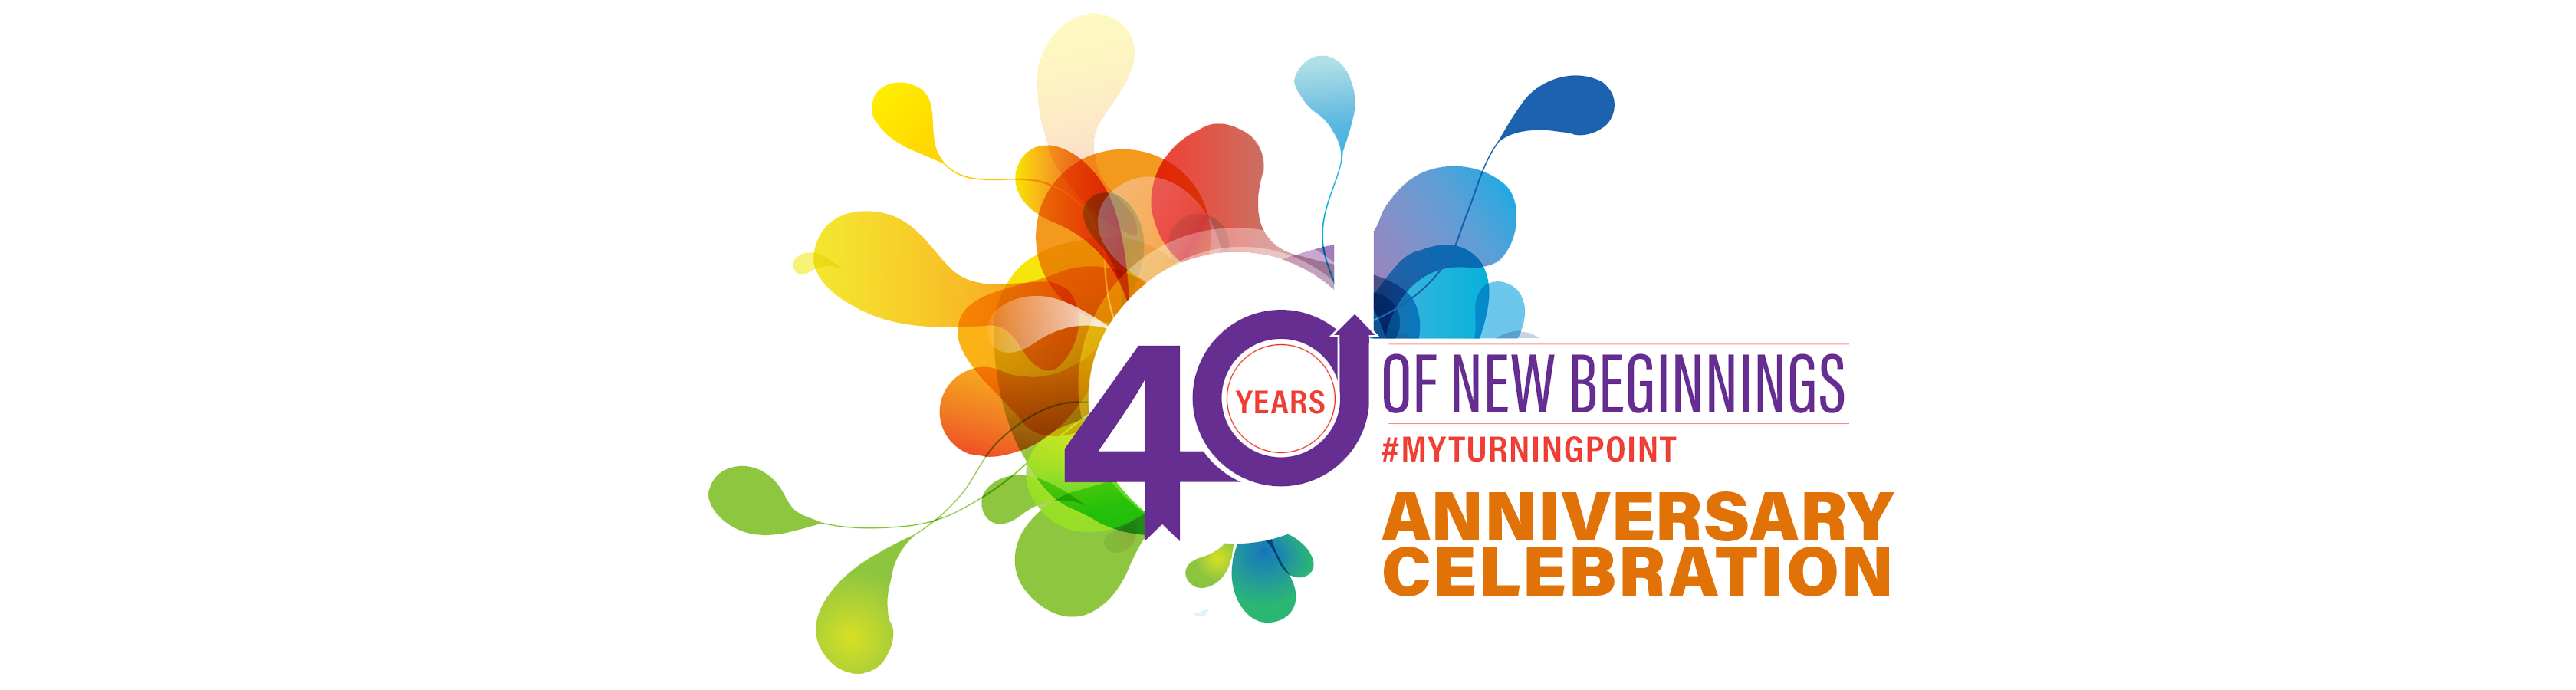 Turning Point 40th Anniversary